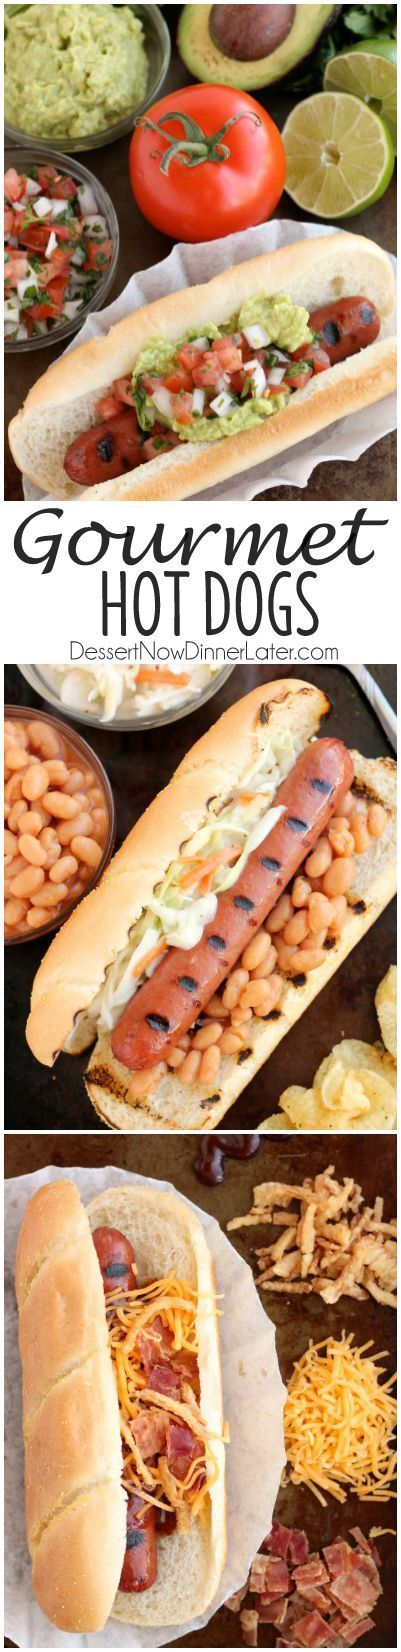 For your next barbecue or backyard grilling party, impress your guests with these Gourmet Hot Dogs 3 Ways: Mexican, Southern, and Western-style.  #FinestGrillathon #ad